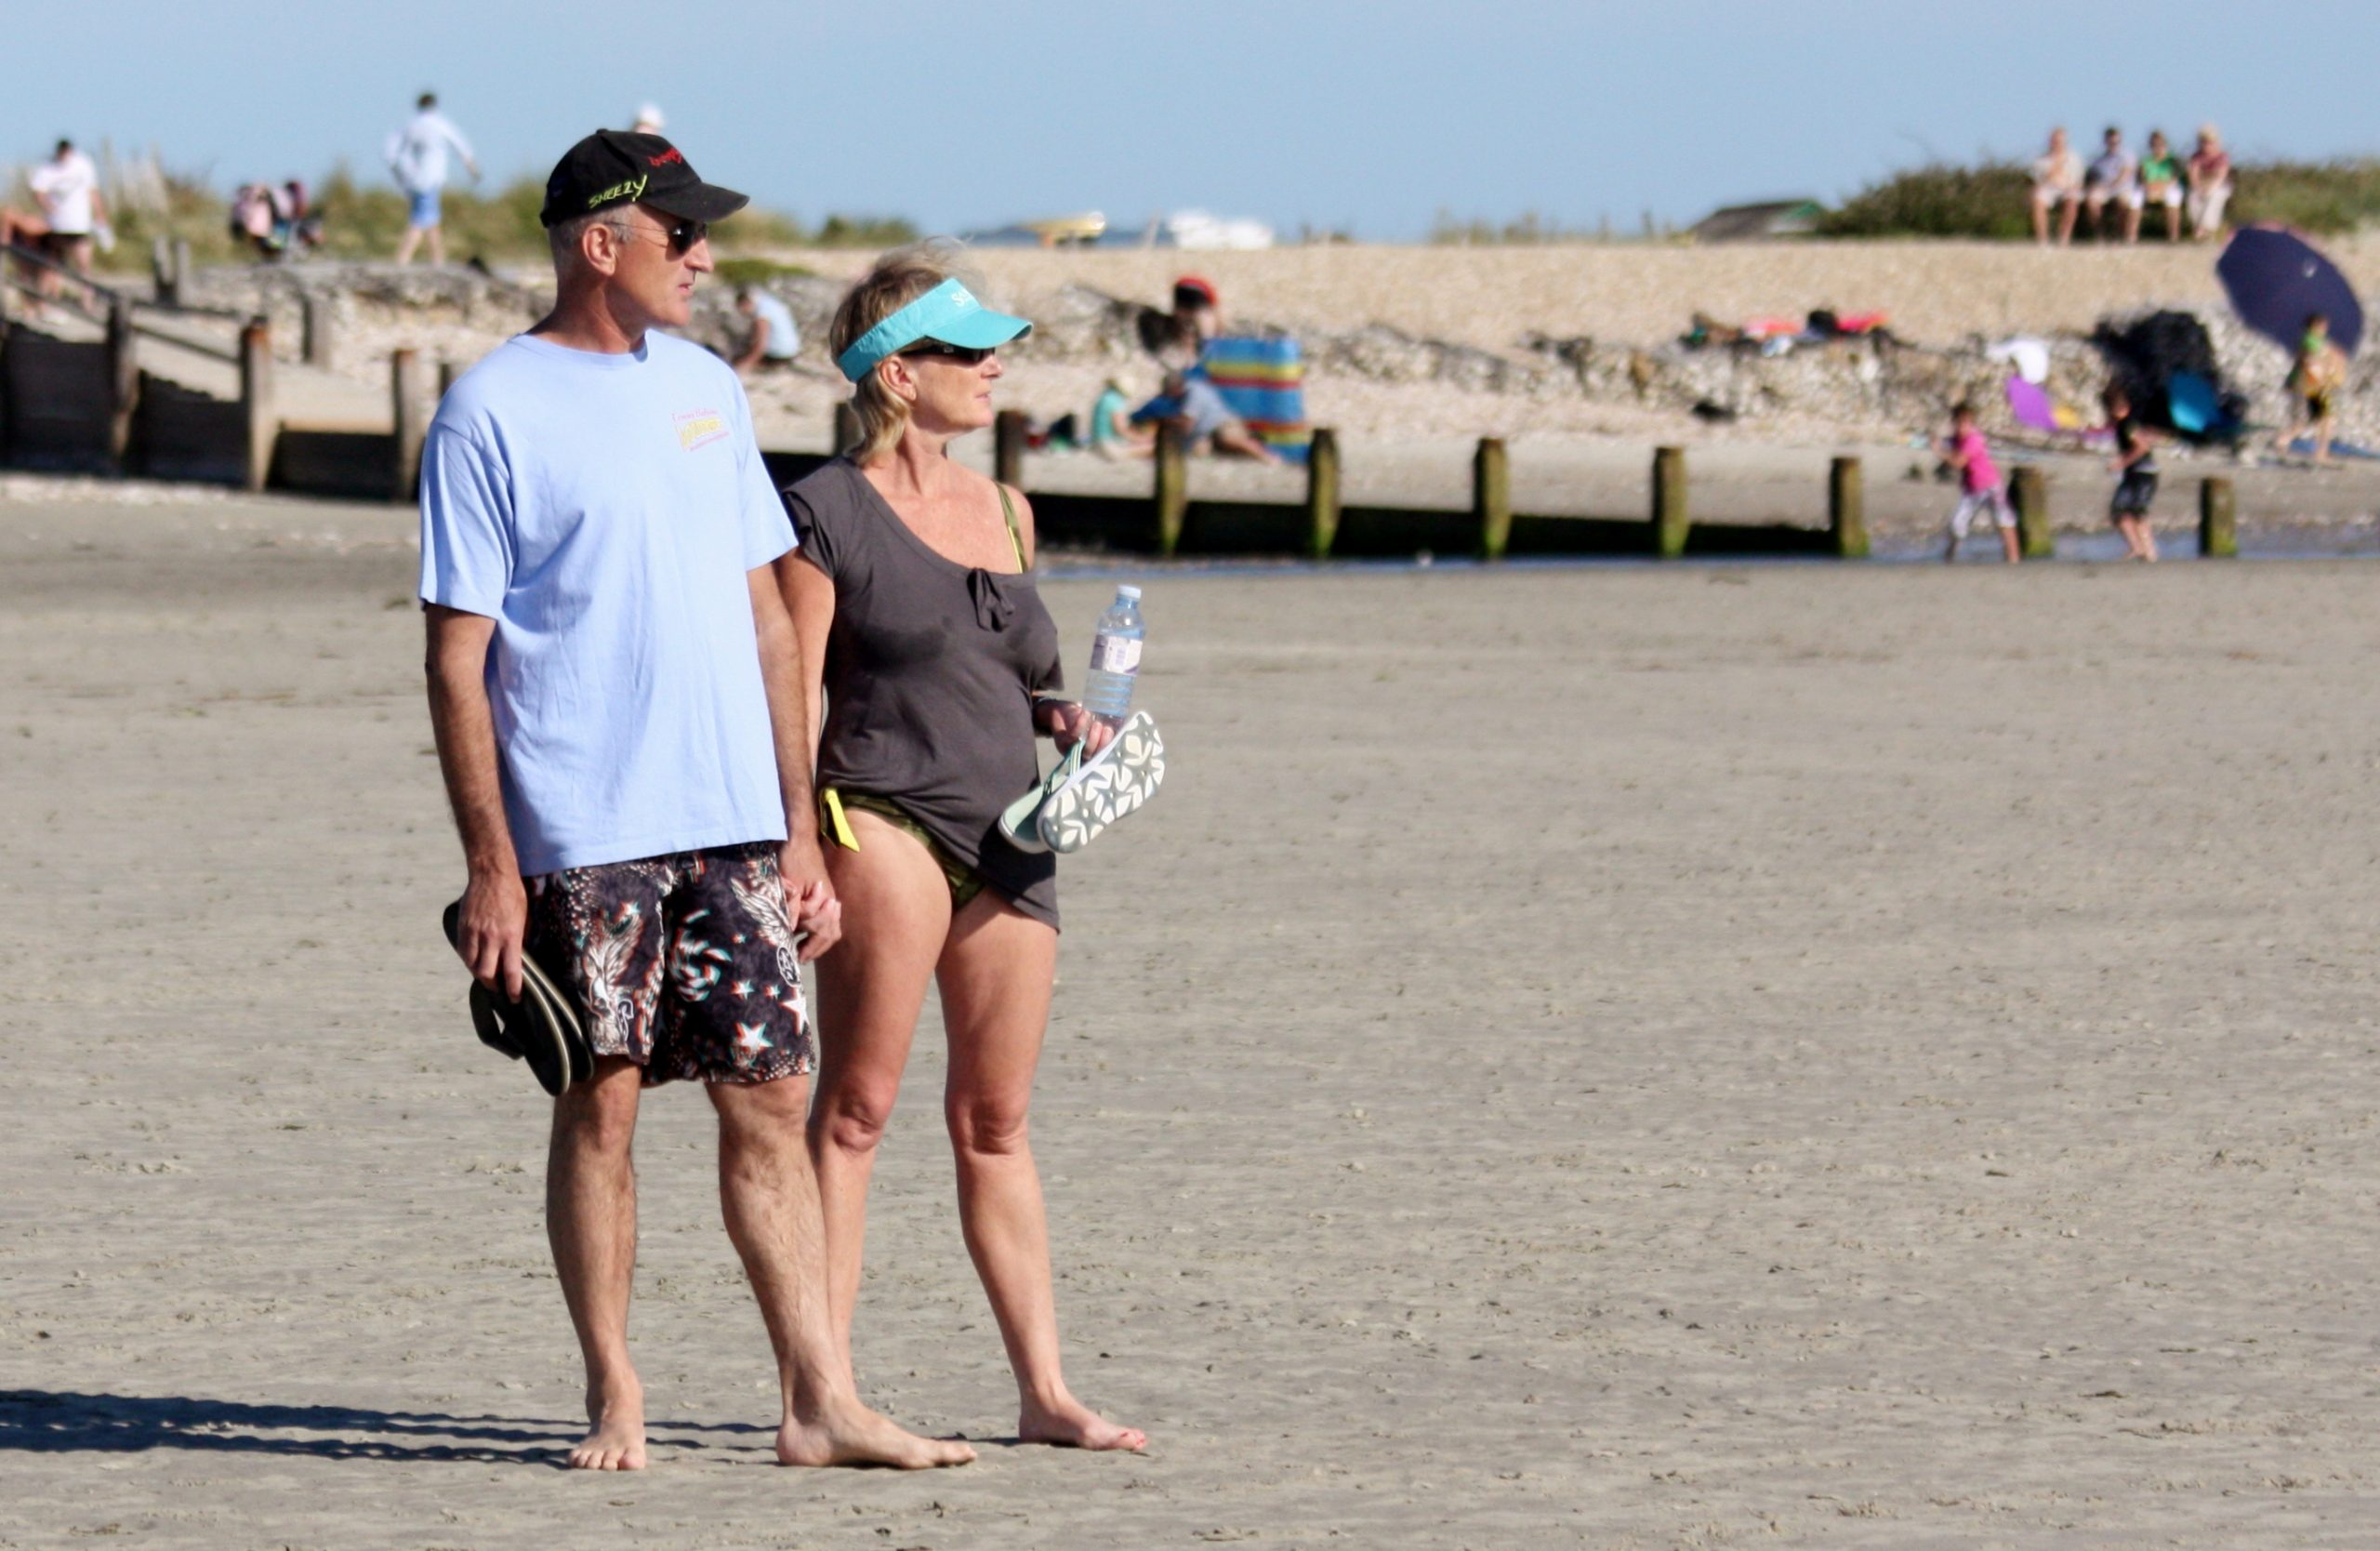 https://commons.wikimedia.org/wiki/File:Wonderful_West_Wittering_-_June_2011_-_Mature_Couple_Candid.jpg?uselang=en-gb